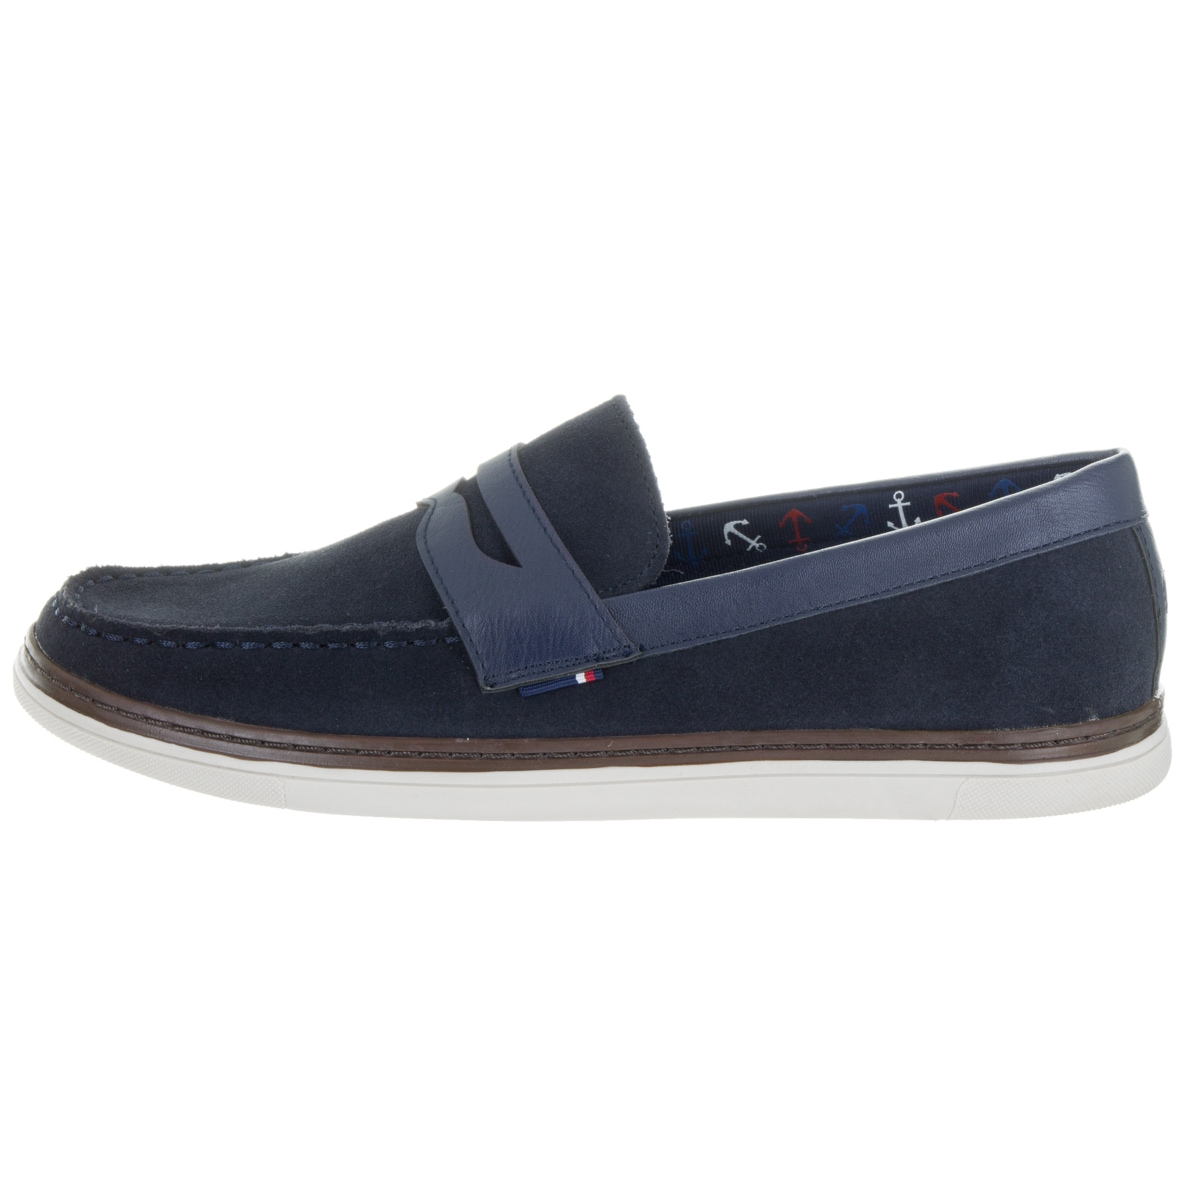 297f2c013470 Shop Tommy Hilfiger Men s Lyons 2 Blue Leather Loafers - Free Shipping  Today - Overstock - 13478045